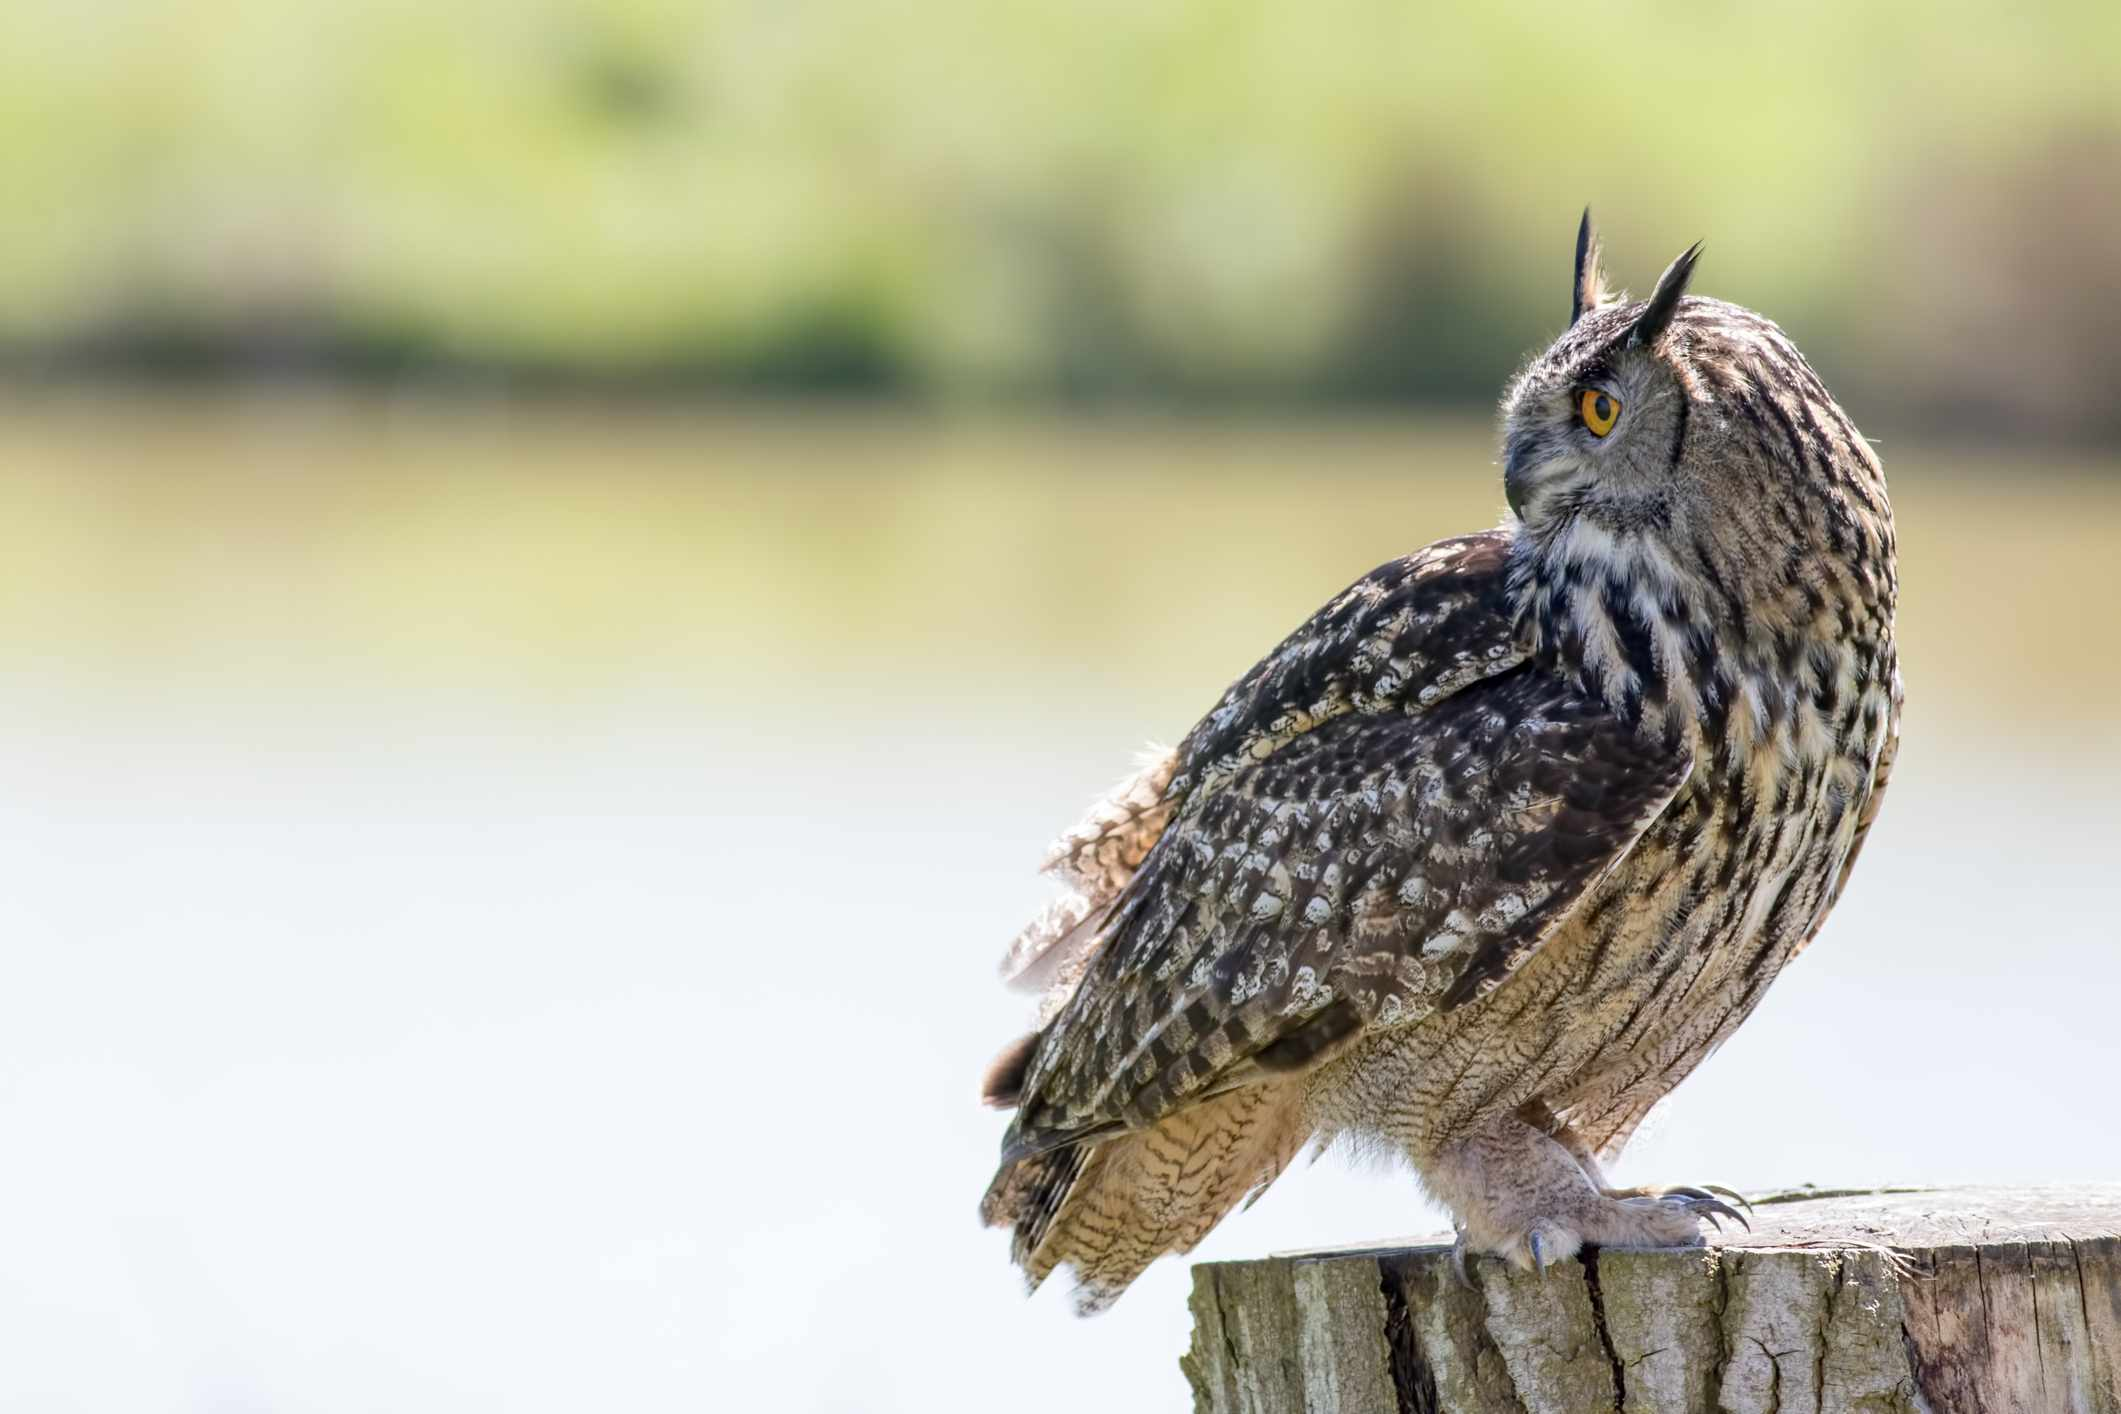 profile of brown eagle owl standing on stump with neck turned looking directly behind